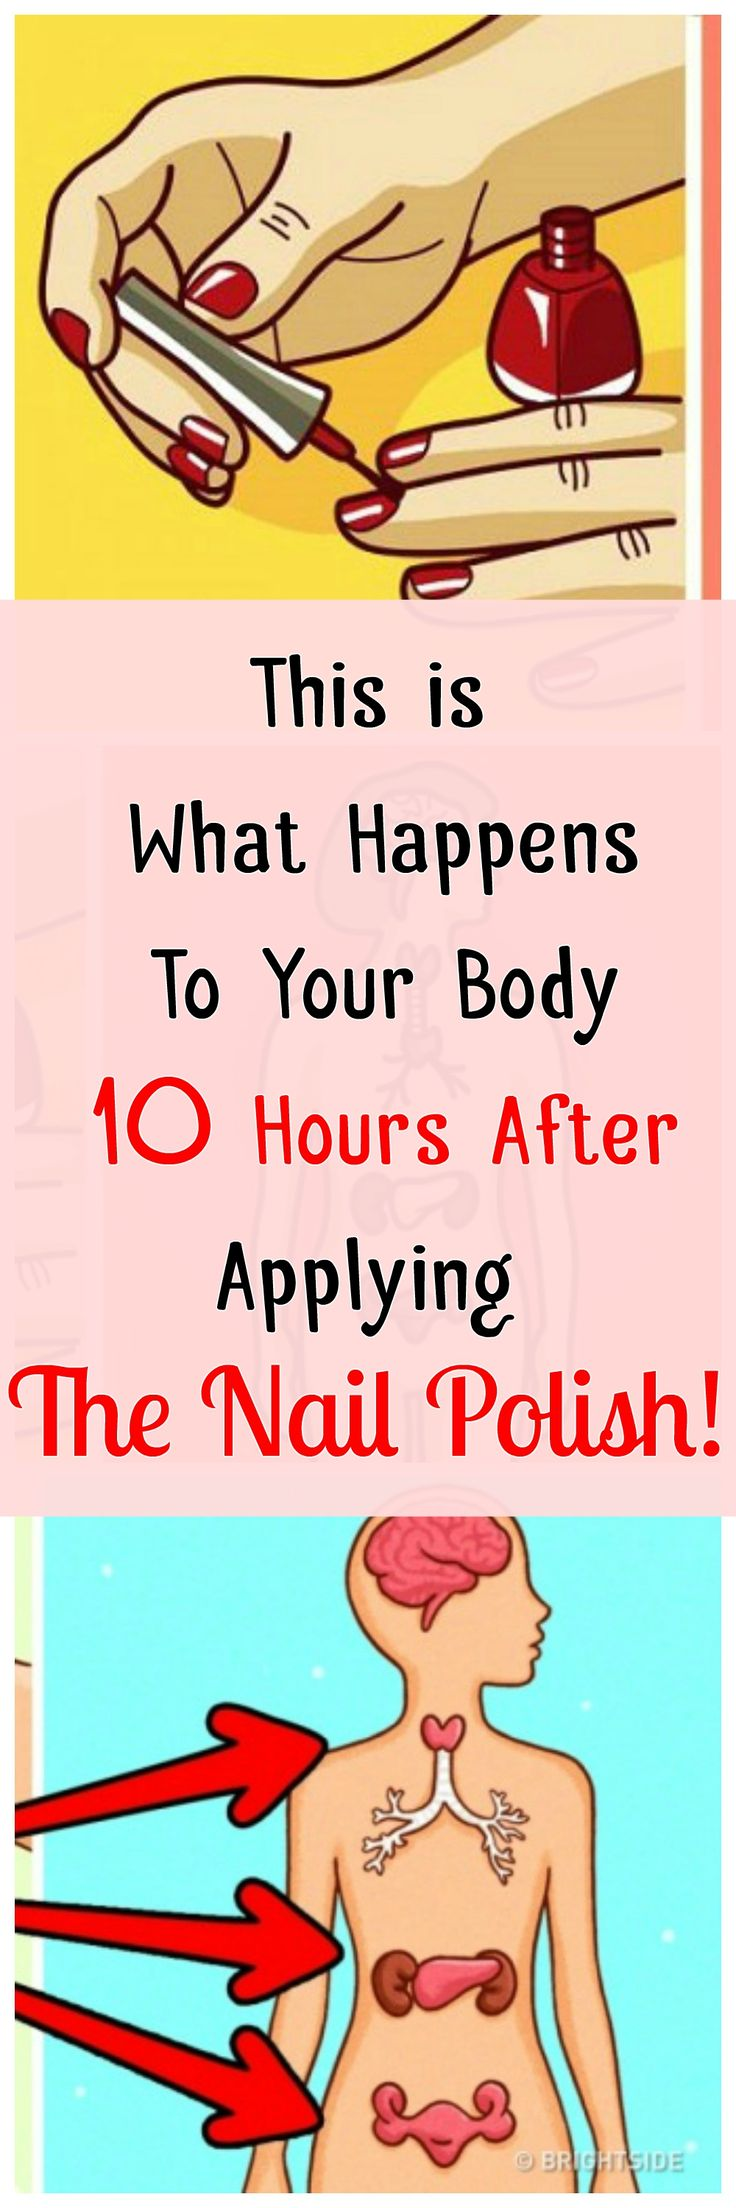 This is What Happens To Your Body TEN Hours After Applying The Nail Polish!!.